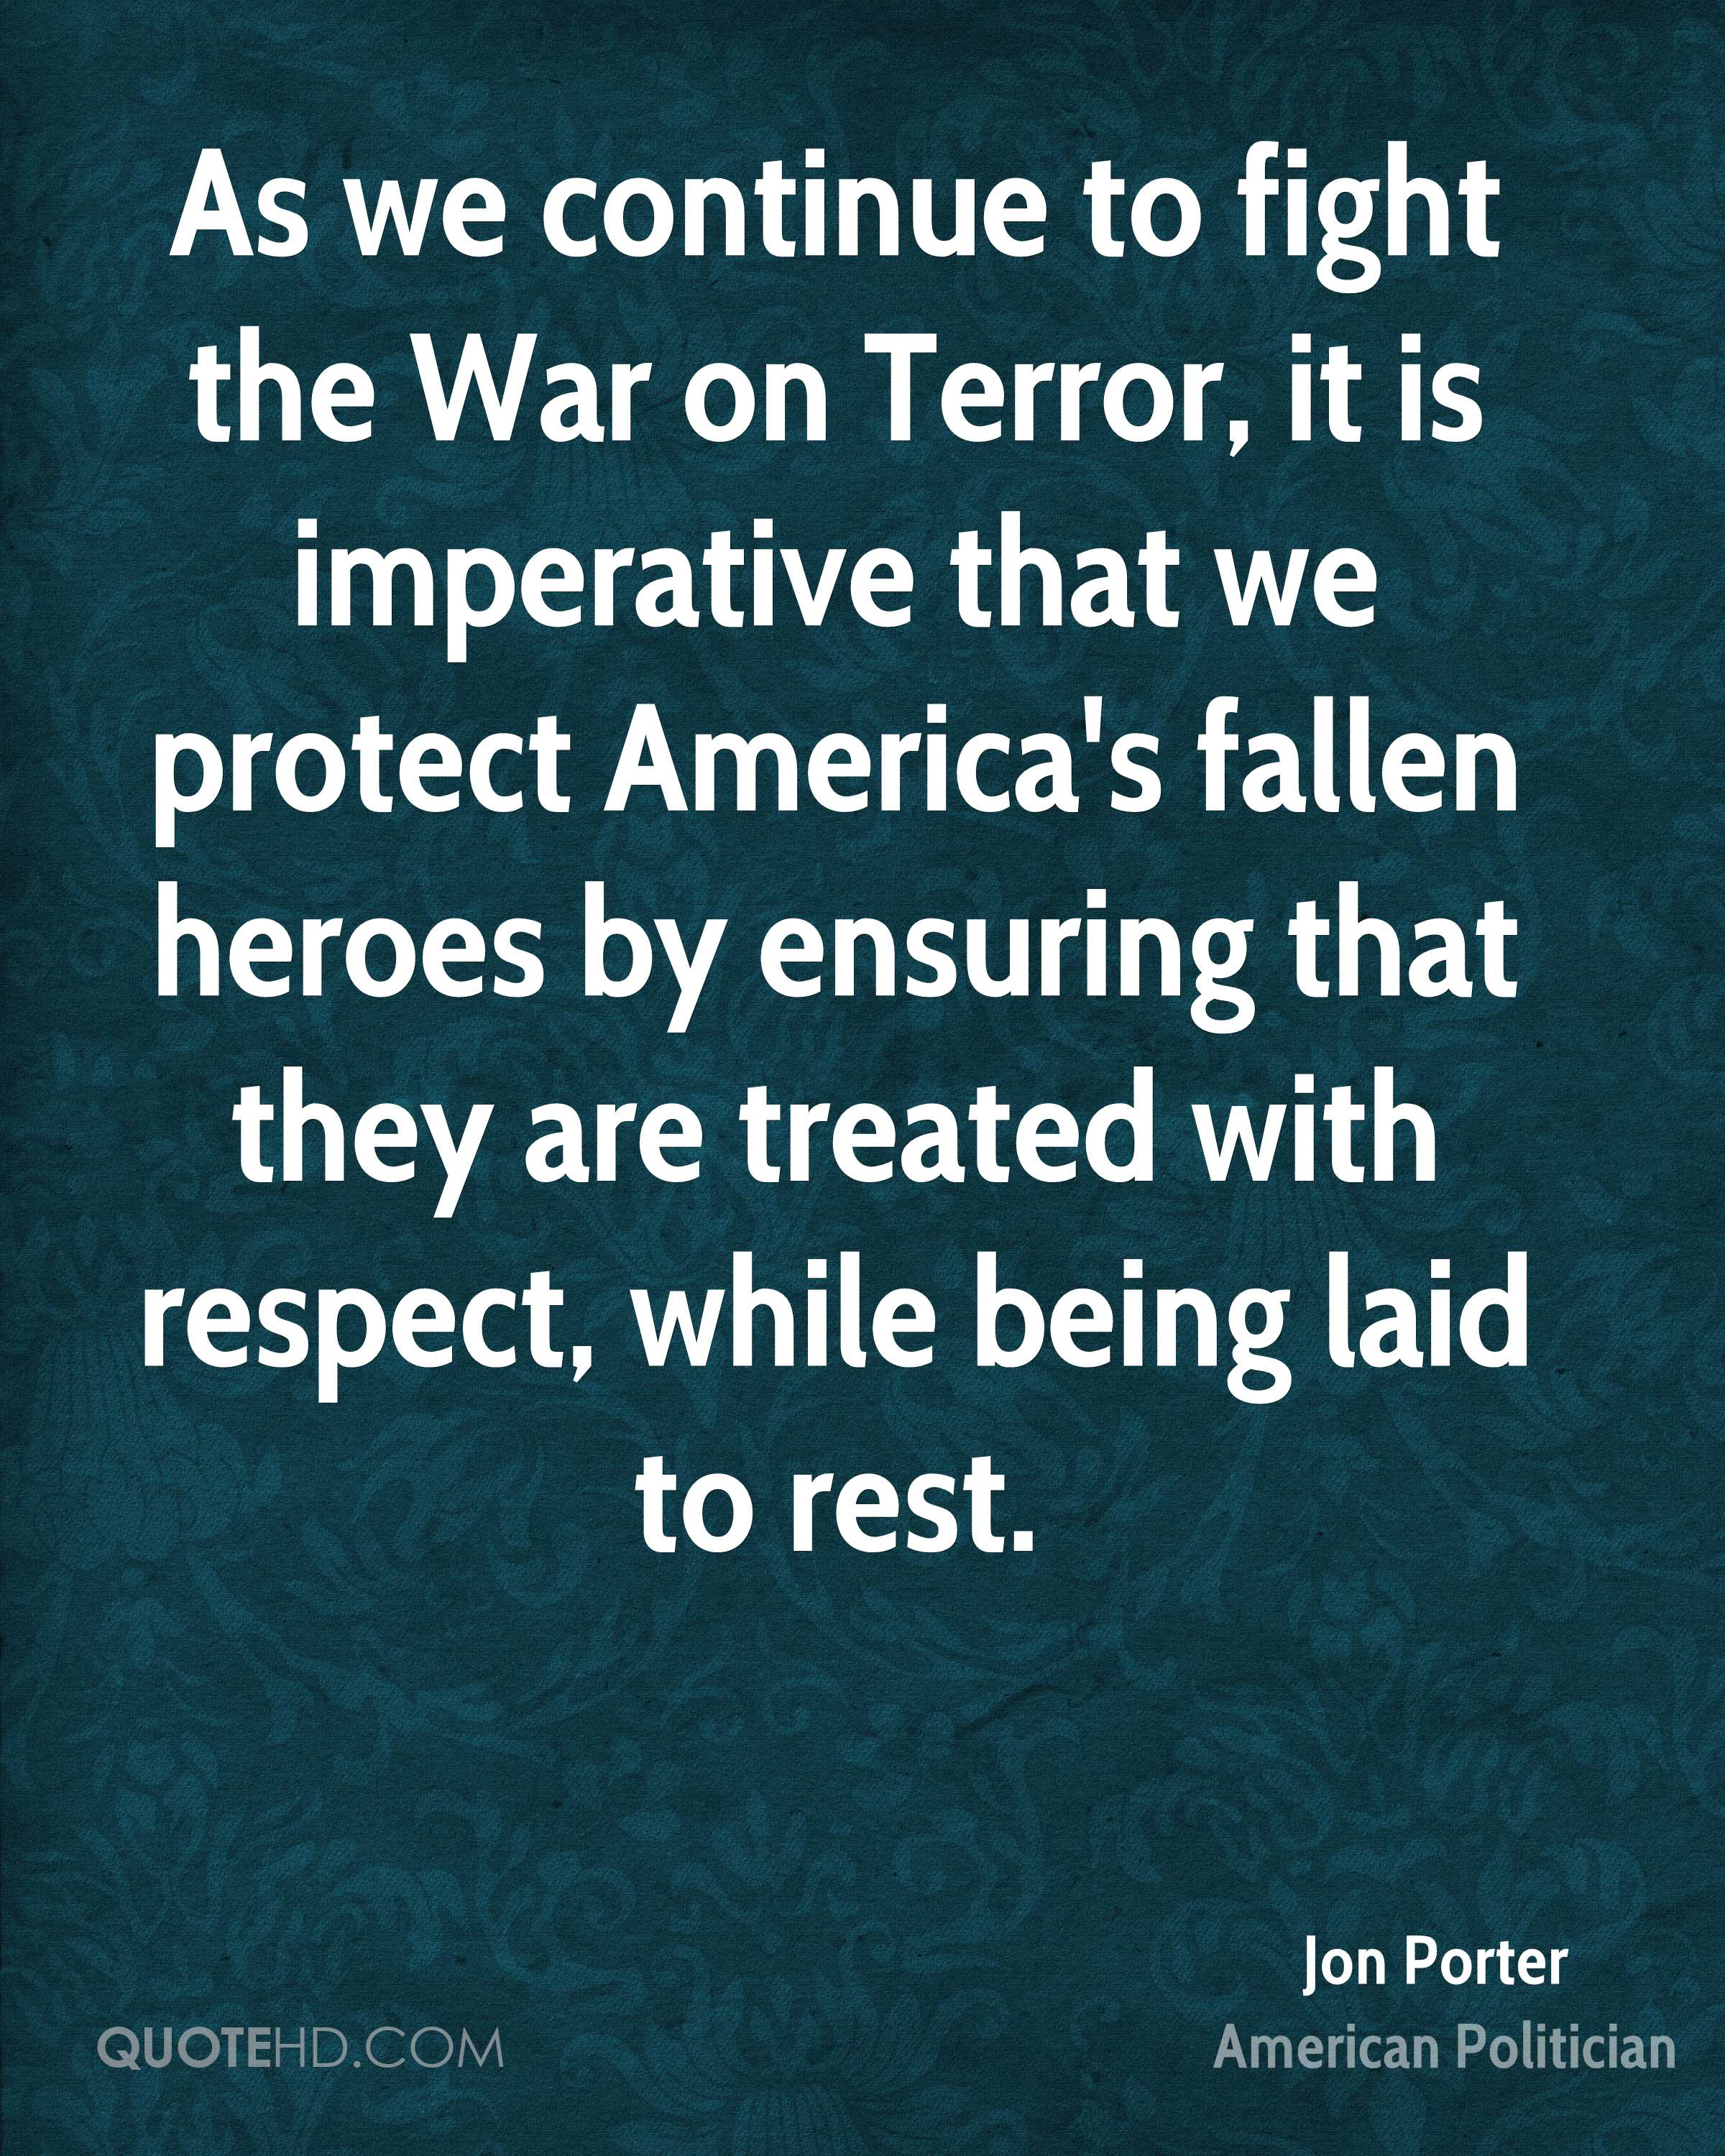 As we continue to fight the War on Terror, it is imperative that we protect America's fallen heroes by ensuring that they are treated with respect, while being laid to rest.